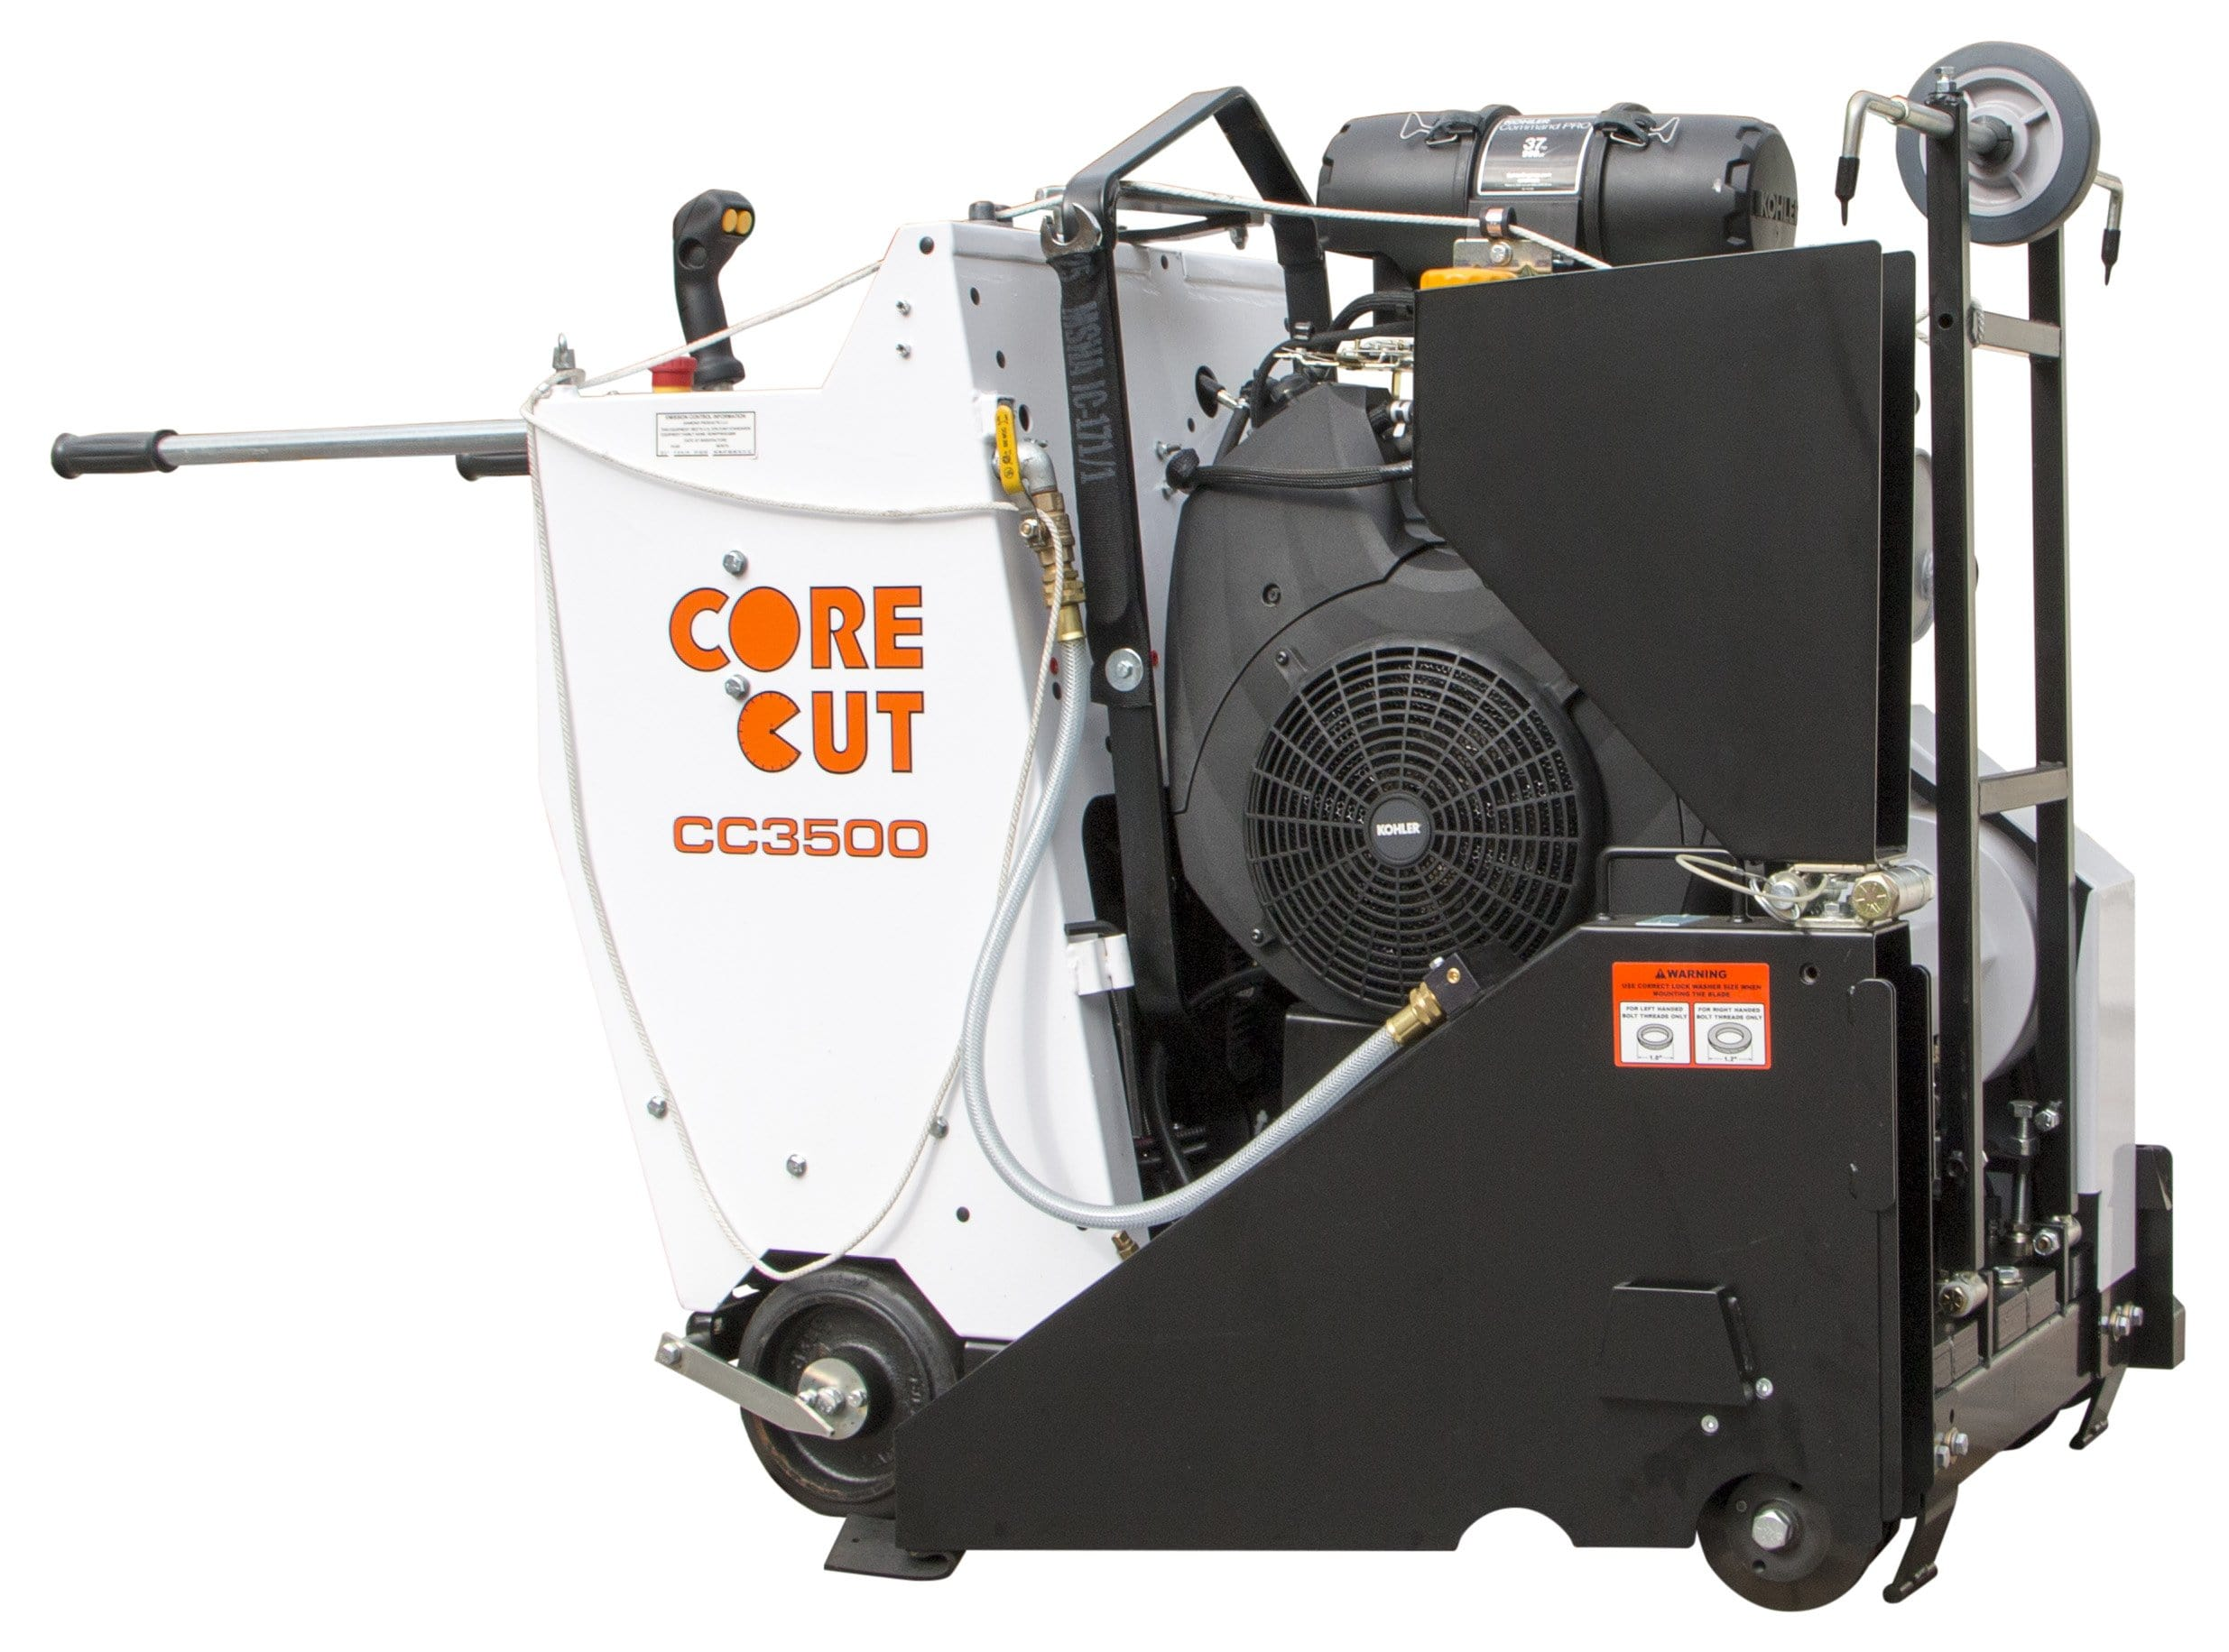 CC3500 Propane Self Propelled Core Cut Walk Behind Saw